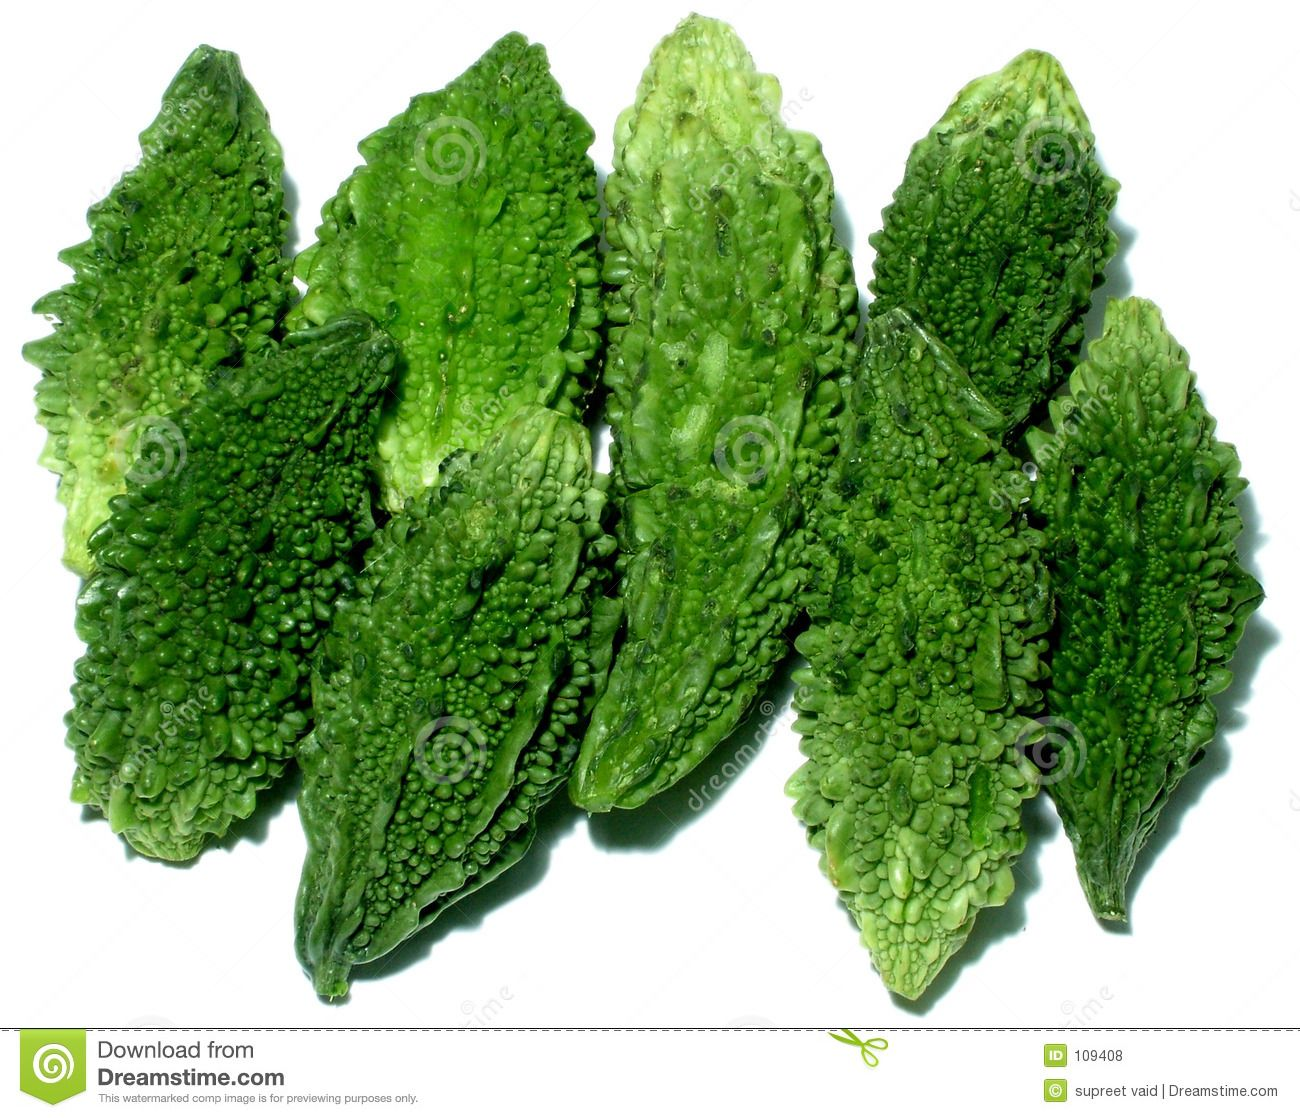 what is Karela? Karela is widely known as bitter melon